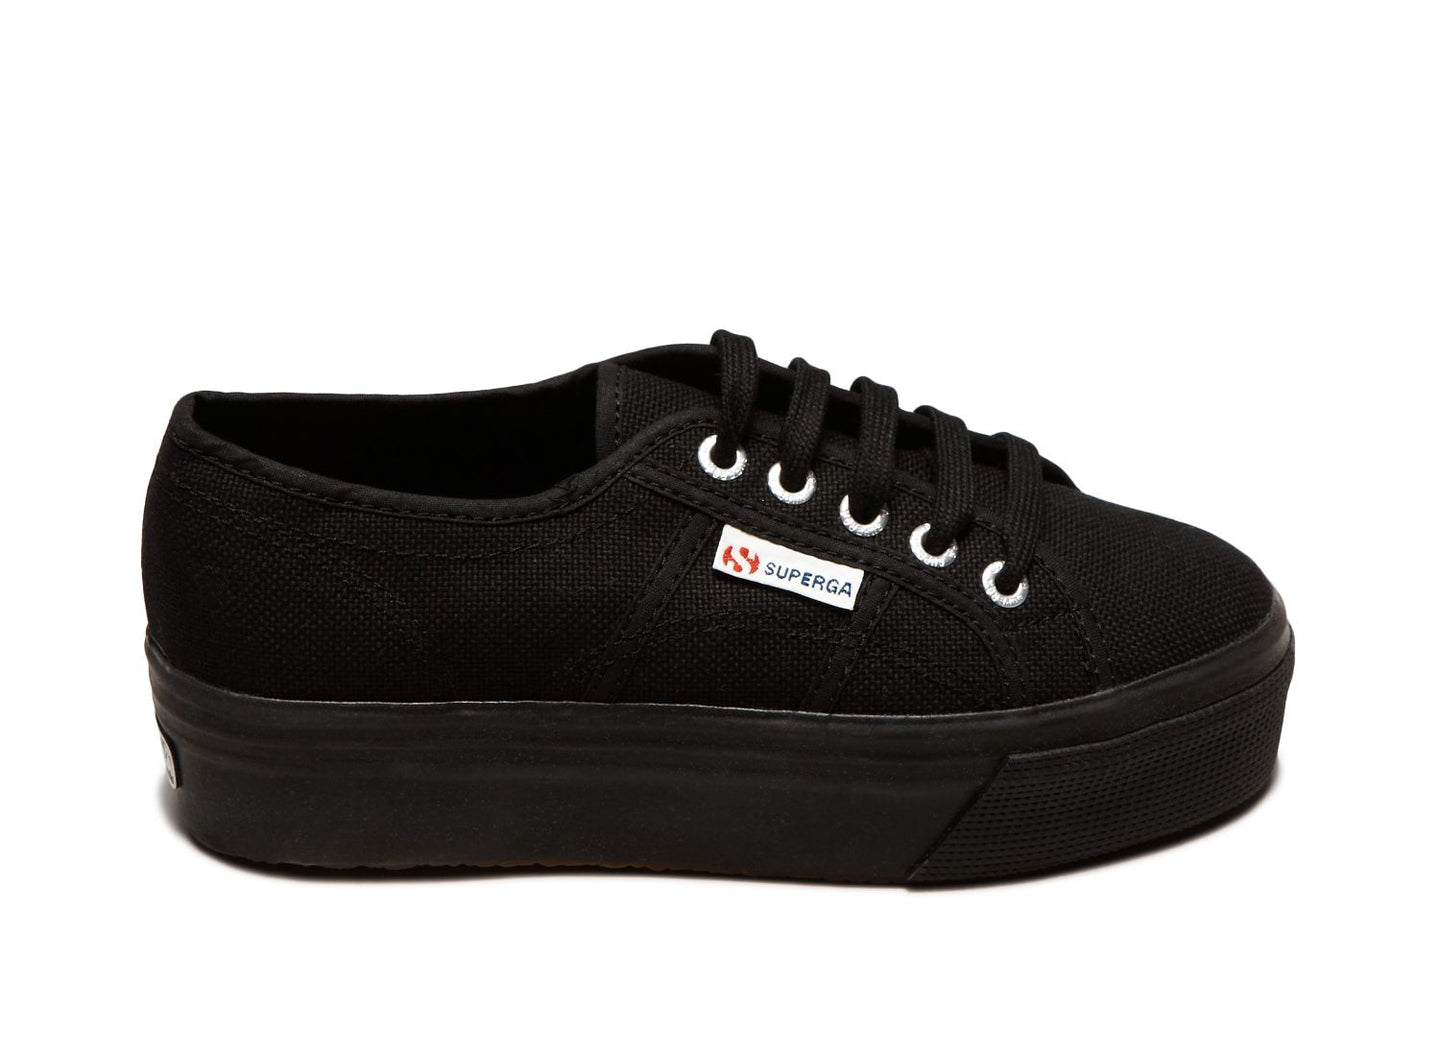 2790 ACOTW FULL BLACK - Women's